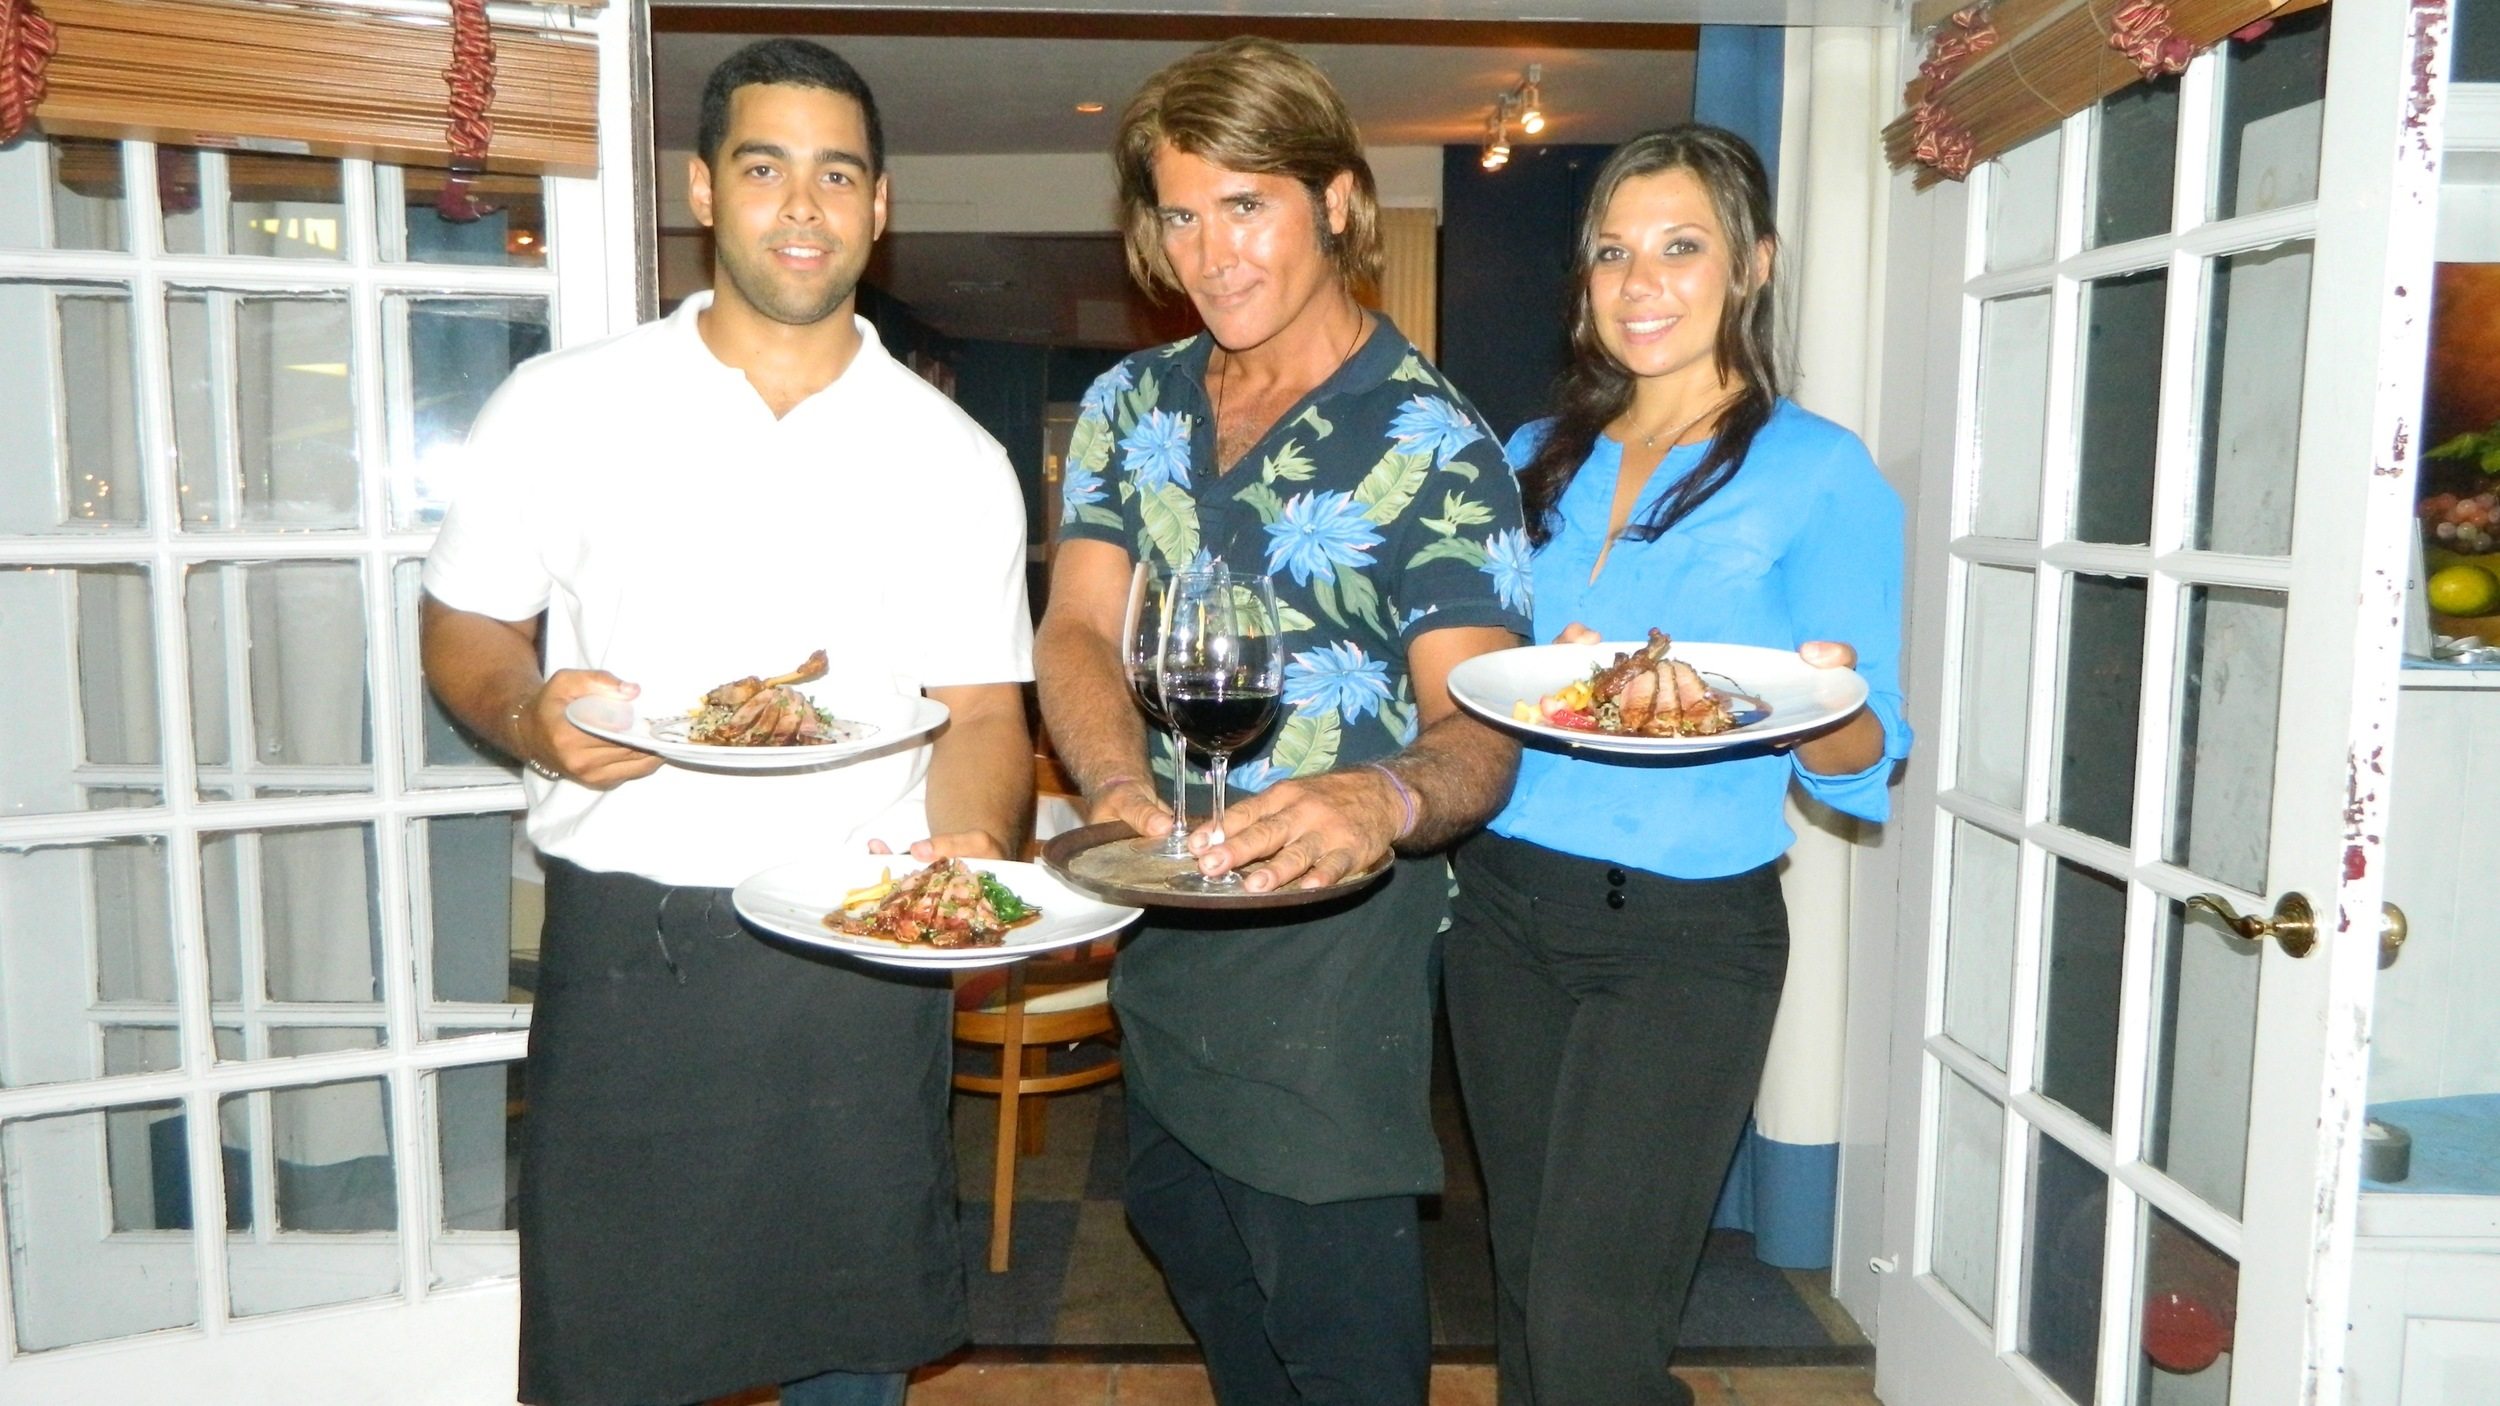 Manager John Angrisani (center) with Christian Feliciano and Courtney Handel, presenting duck with Americano wine.